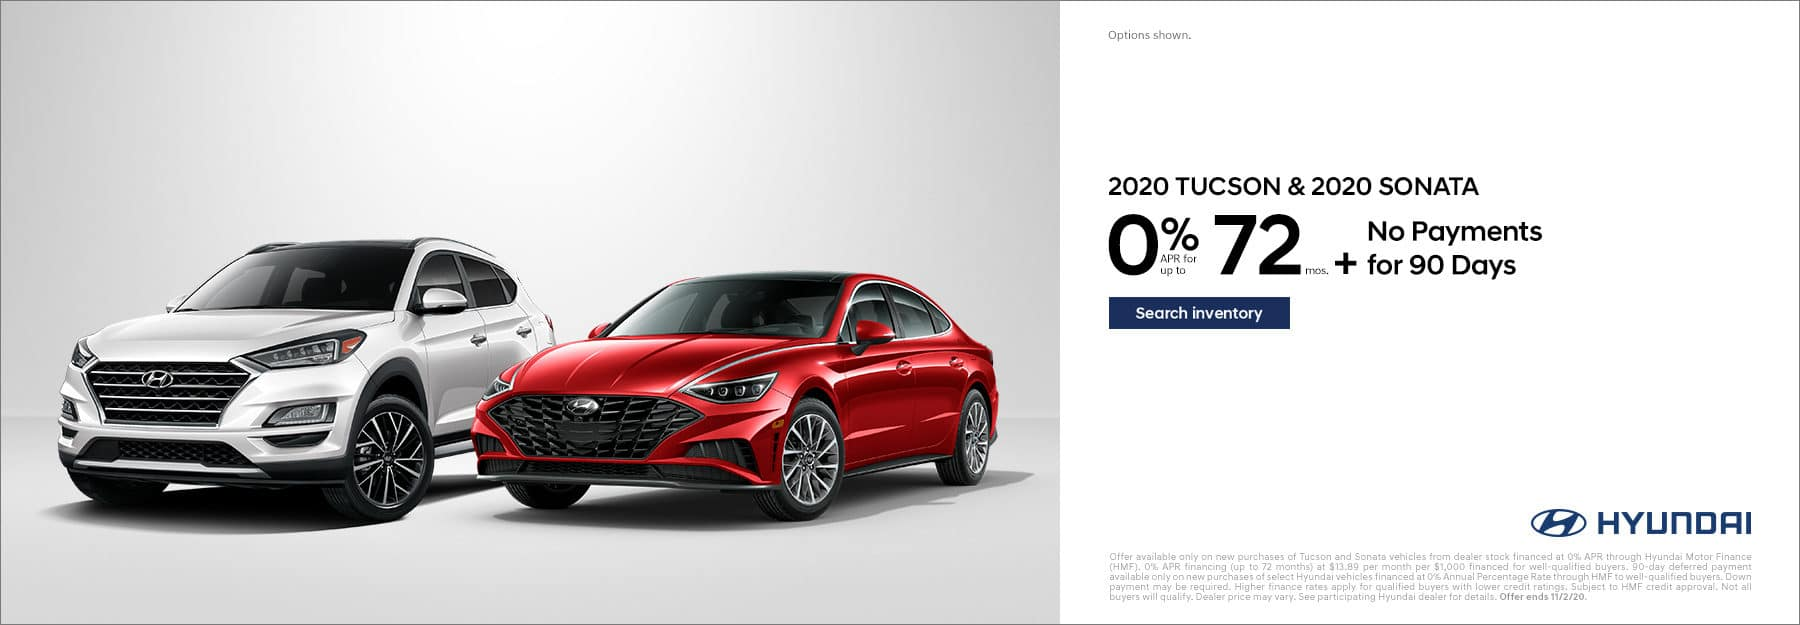 2020 Hyundai Sonata and Tucson 0% APR for 72mo